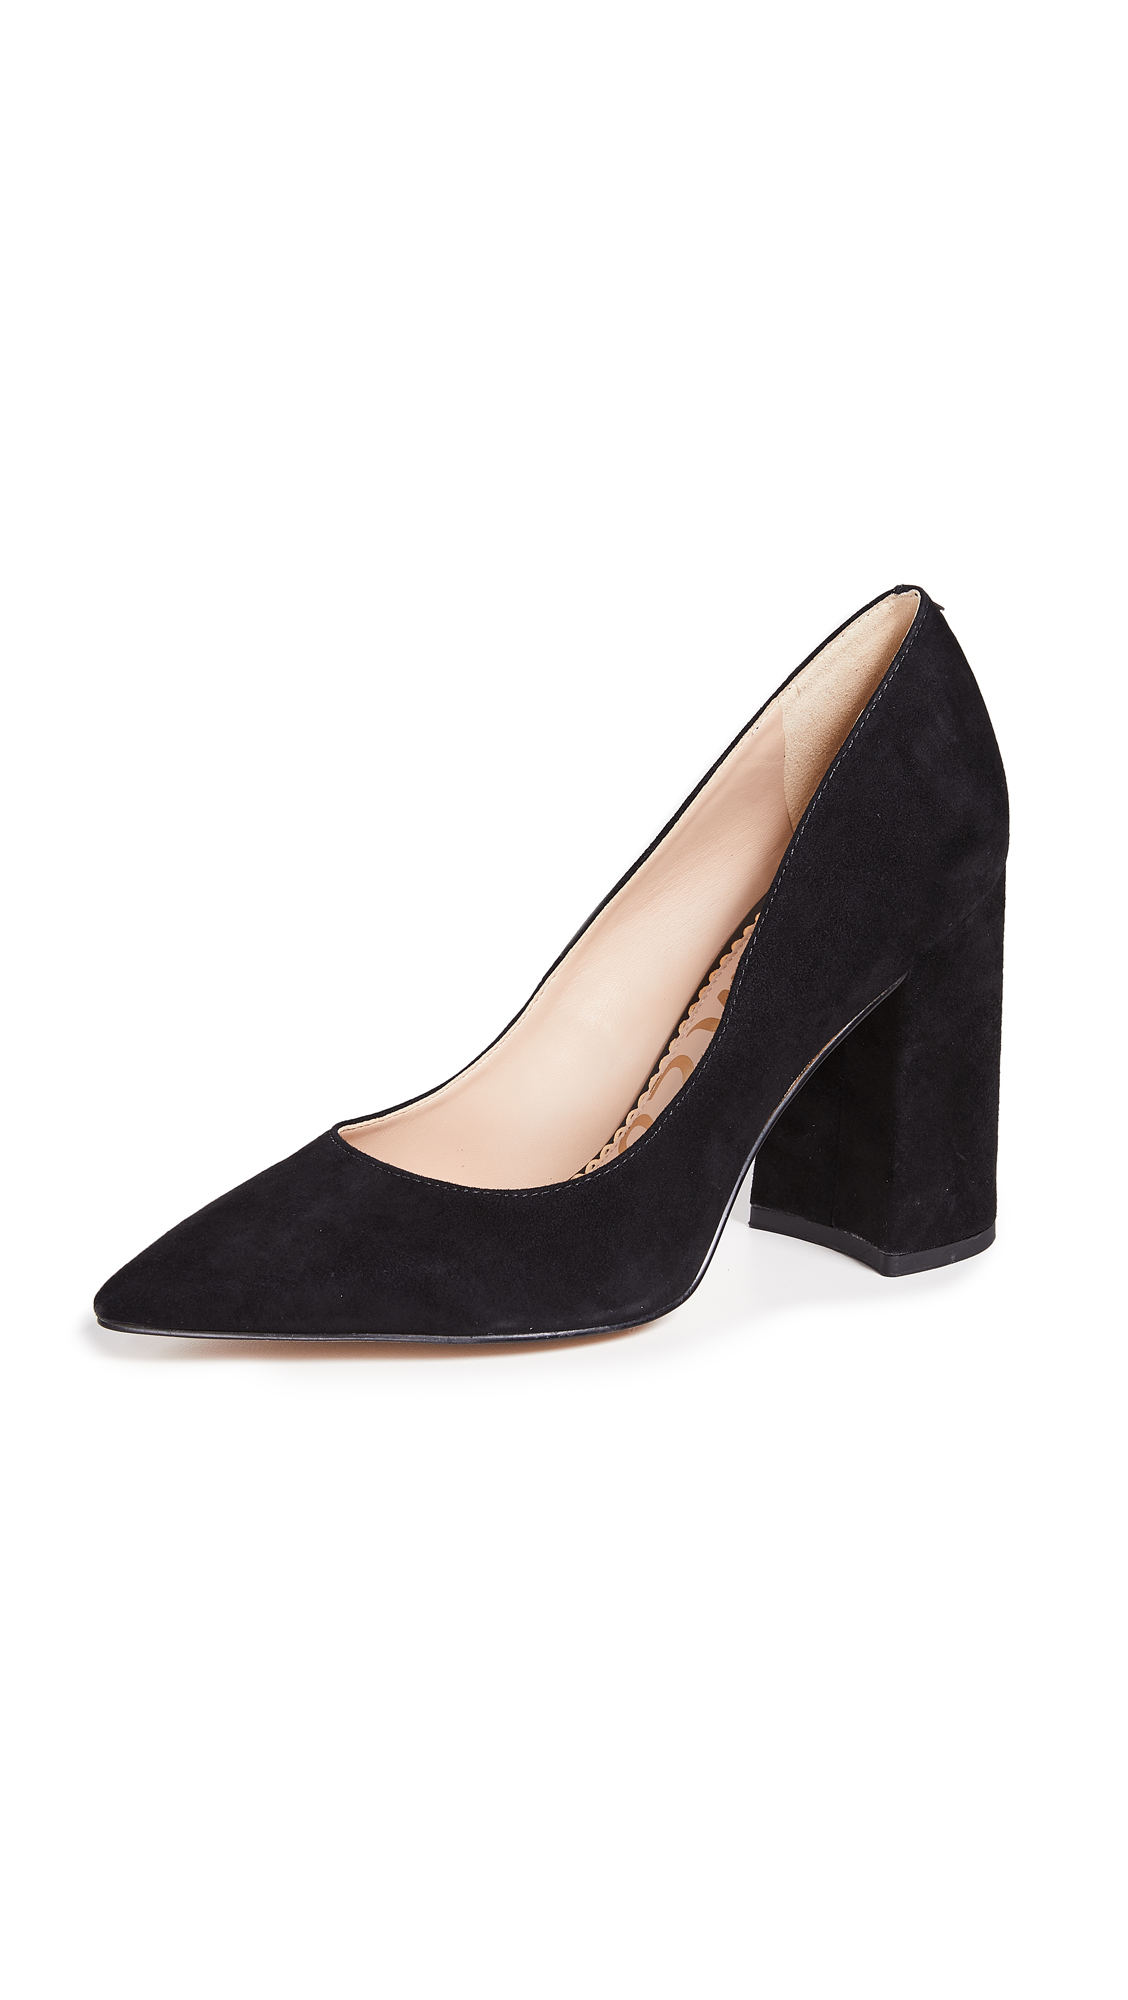 Sam Edelman Halton Pumps - Black